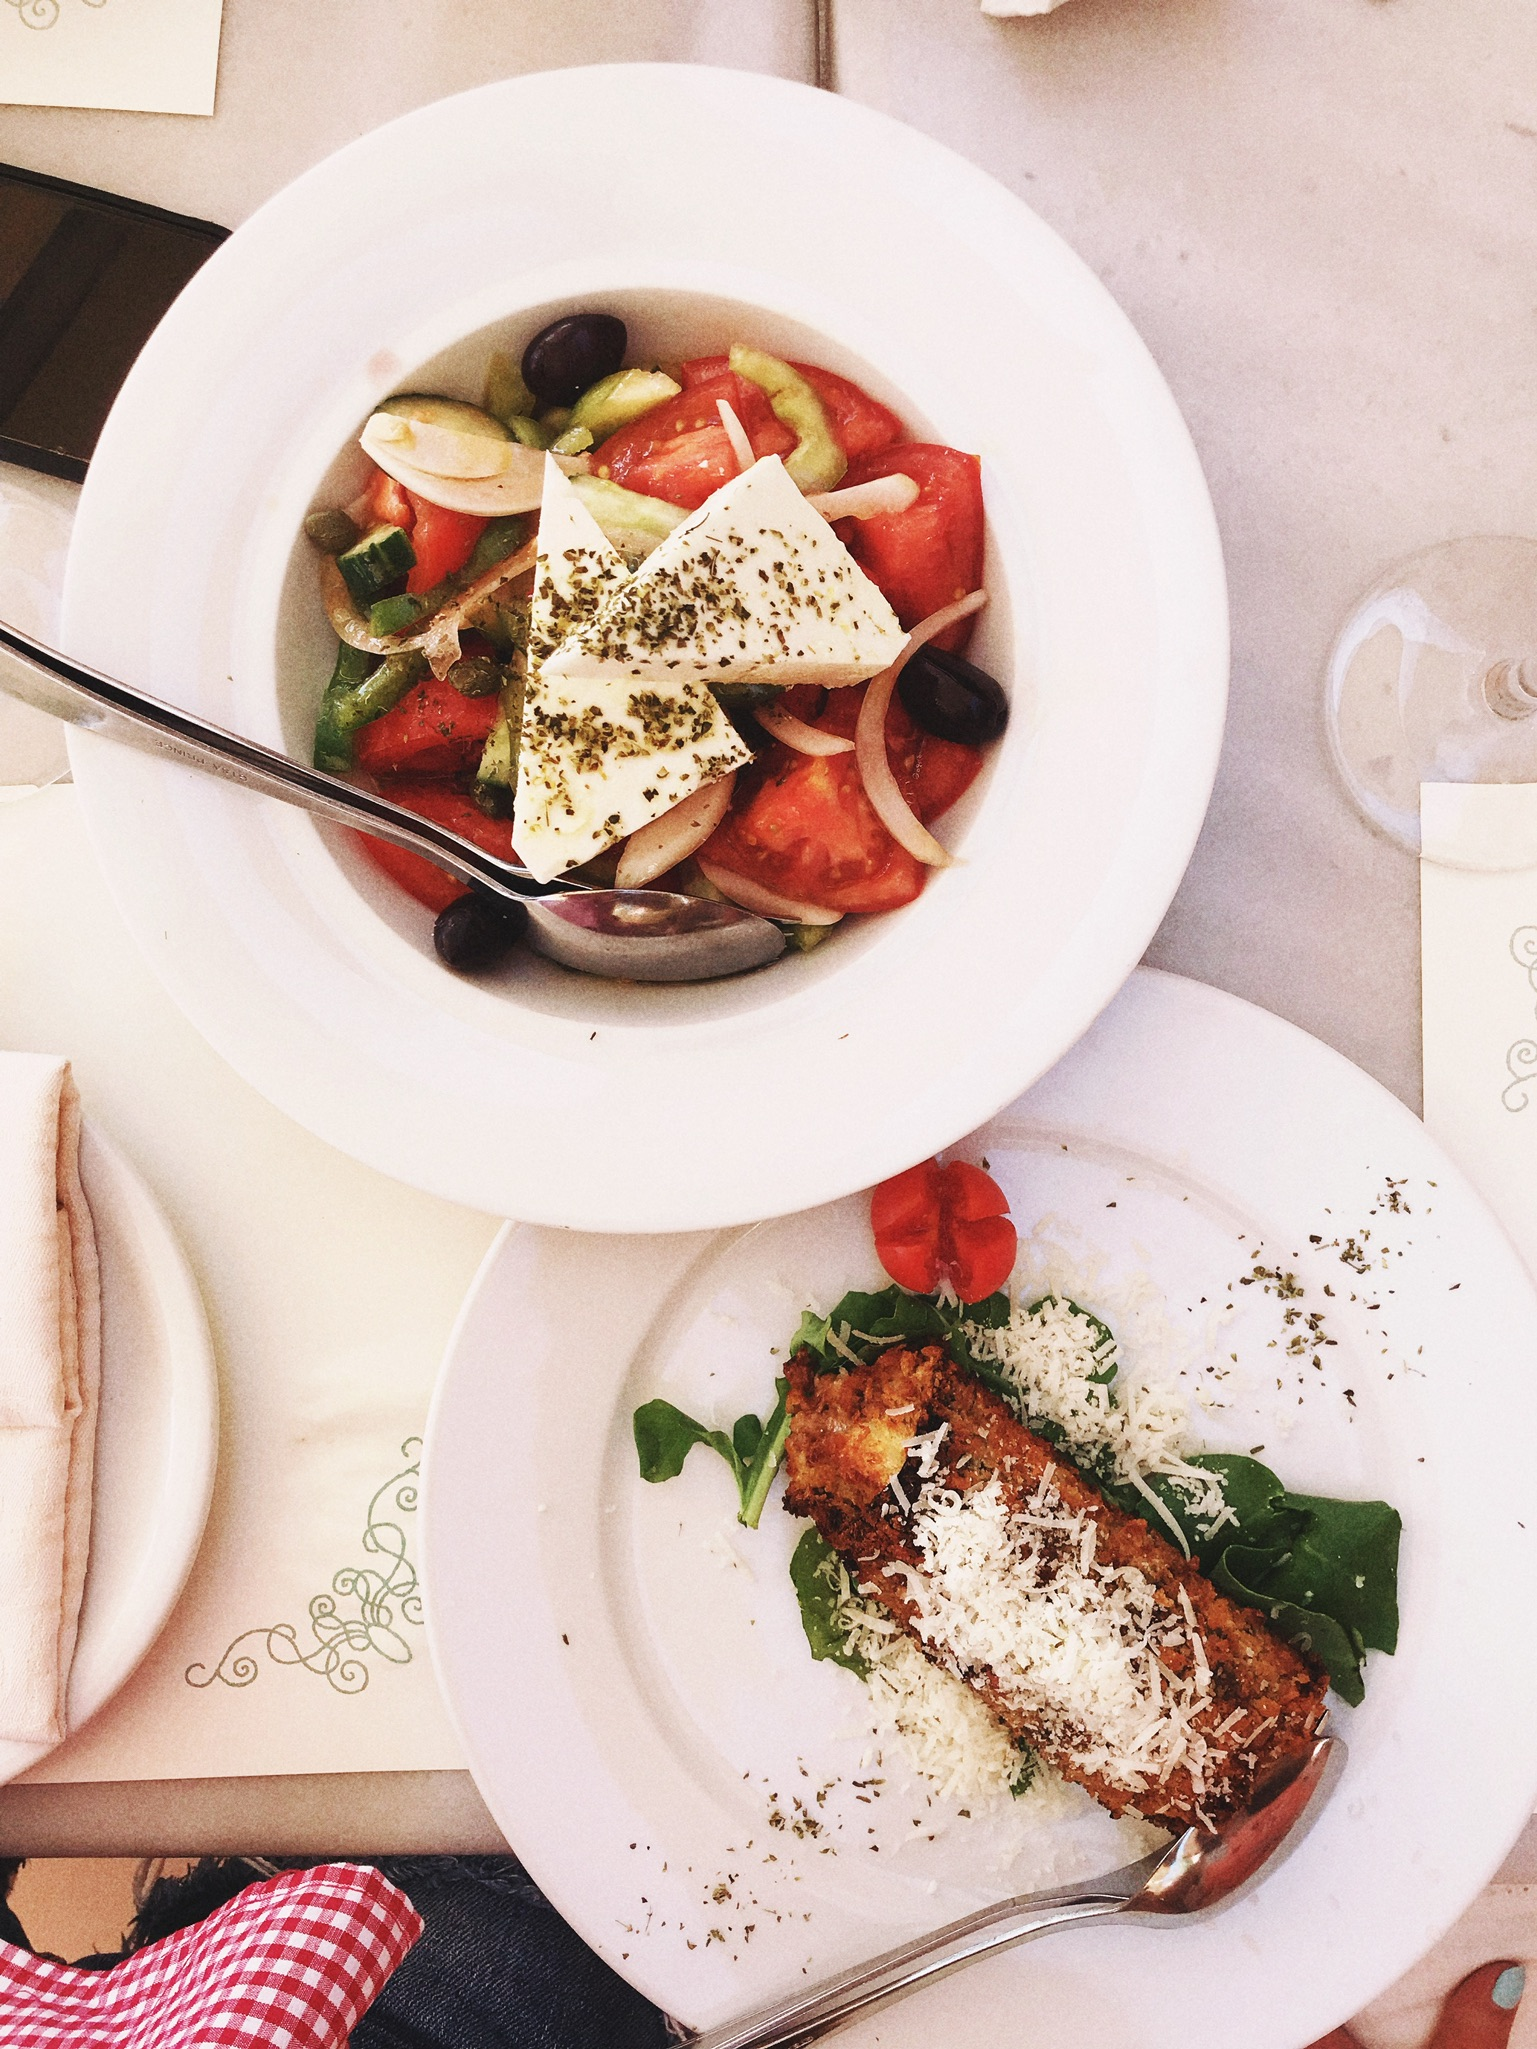 And Greek salad with every meal